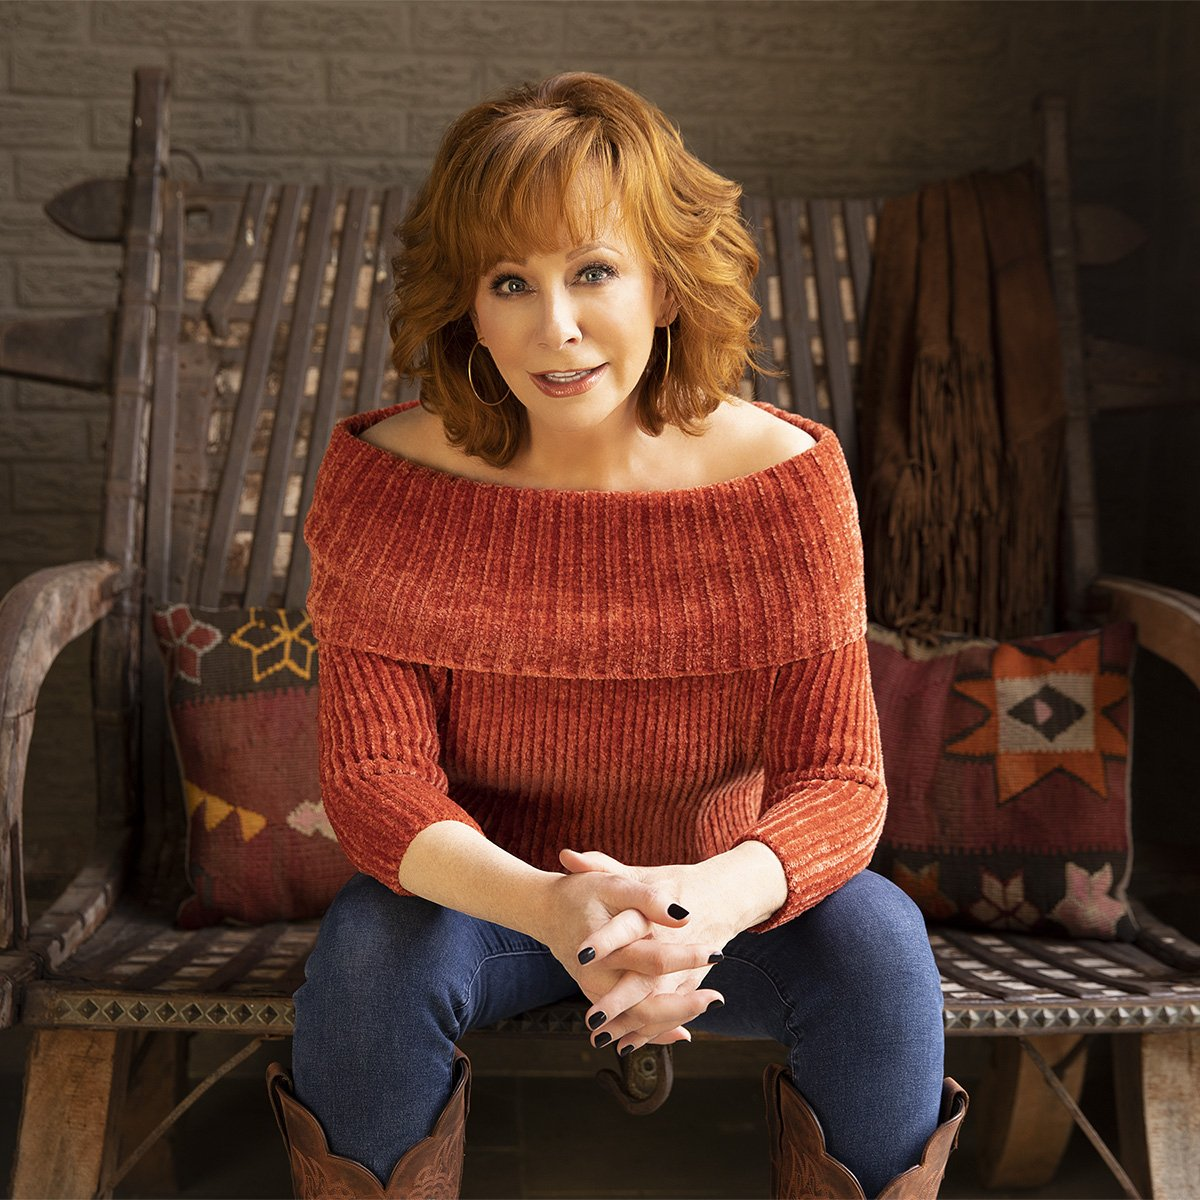 RT @reba: Fall is officially here and so are new items from Reba at @Dillards! https://t.co/wXReIGQ9Pe https://t.co/iYNd23hTWI